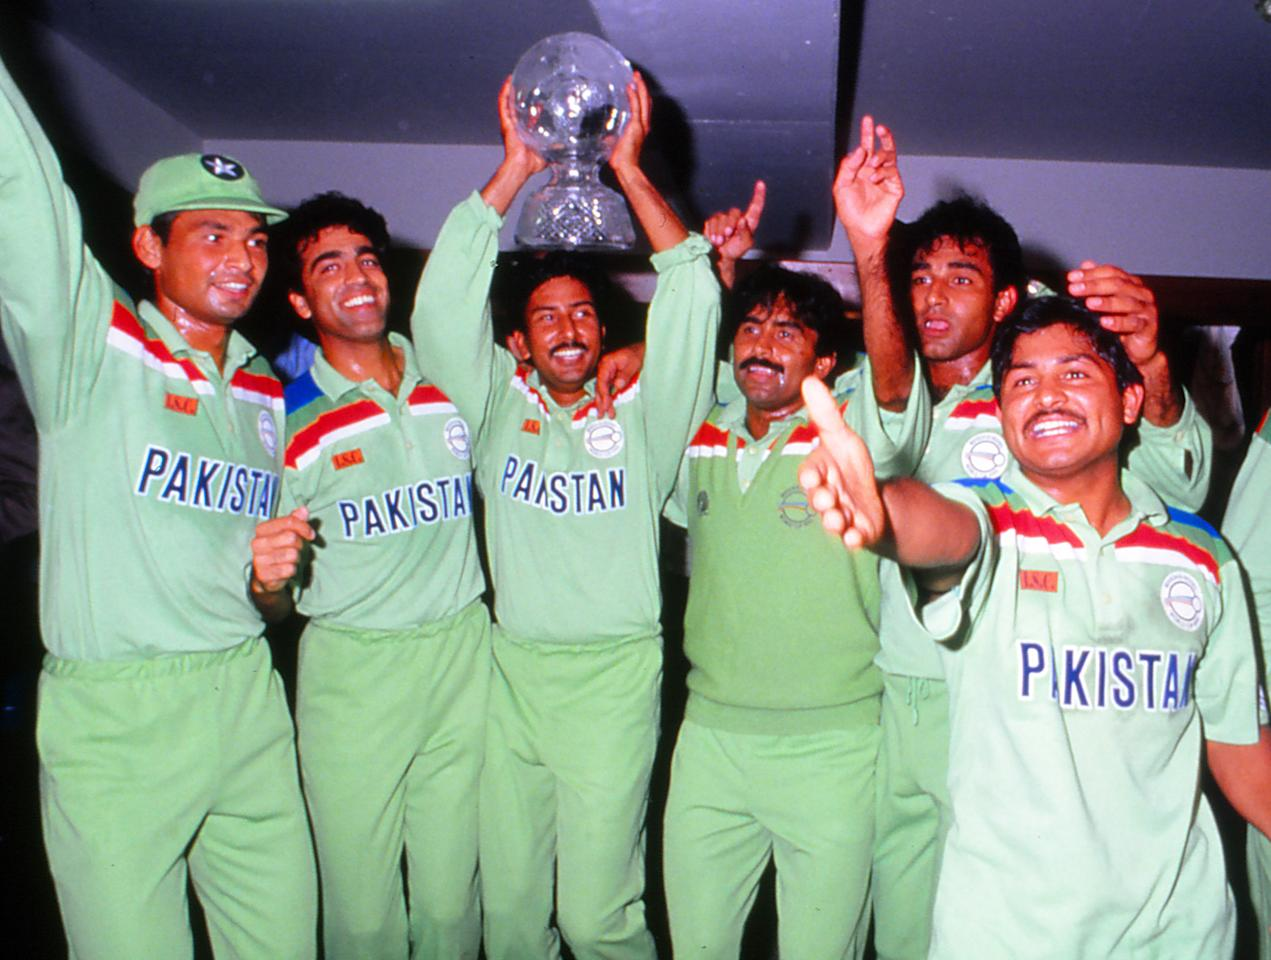 AUSTRALIA - 1992: Pakistan players celebrate with the trophy after winning the Cricket World Cup against England in 1992.. (Photo by Getty Images)